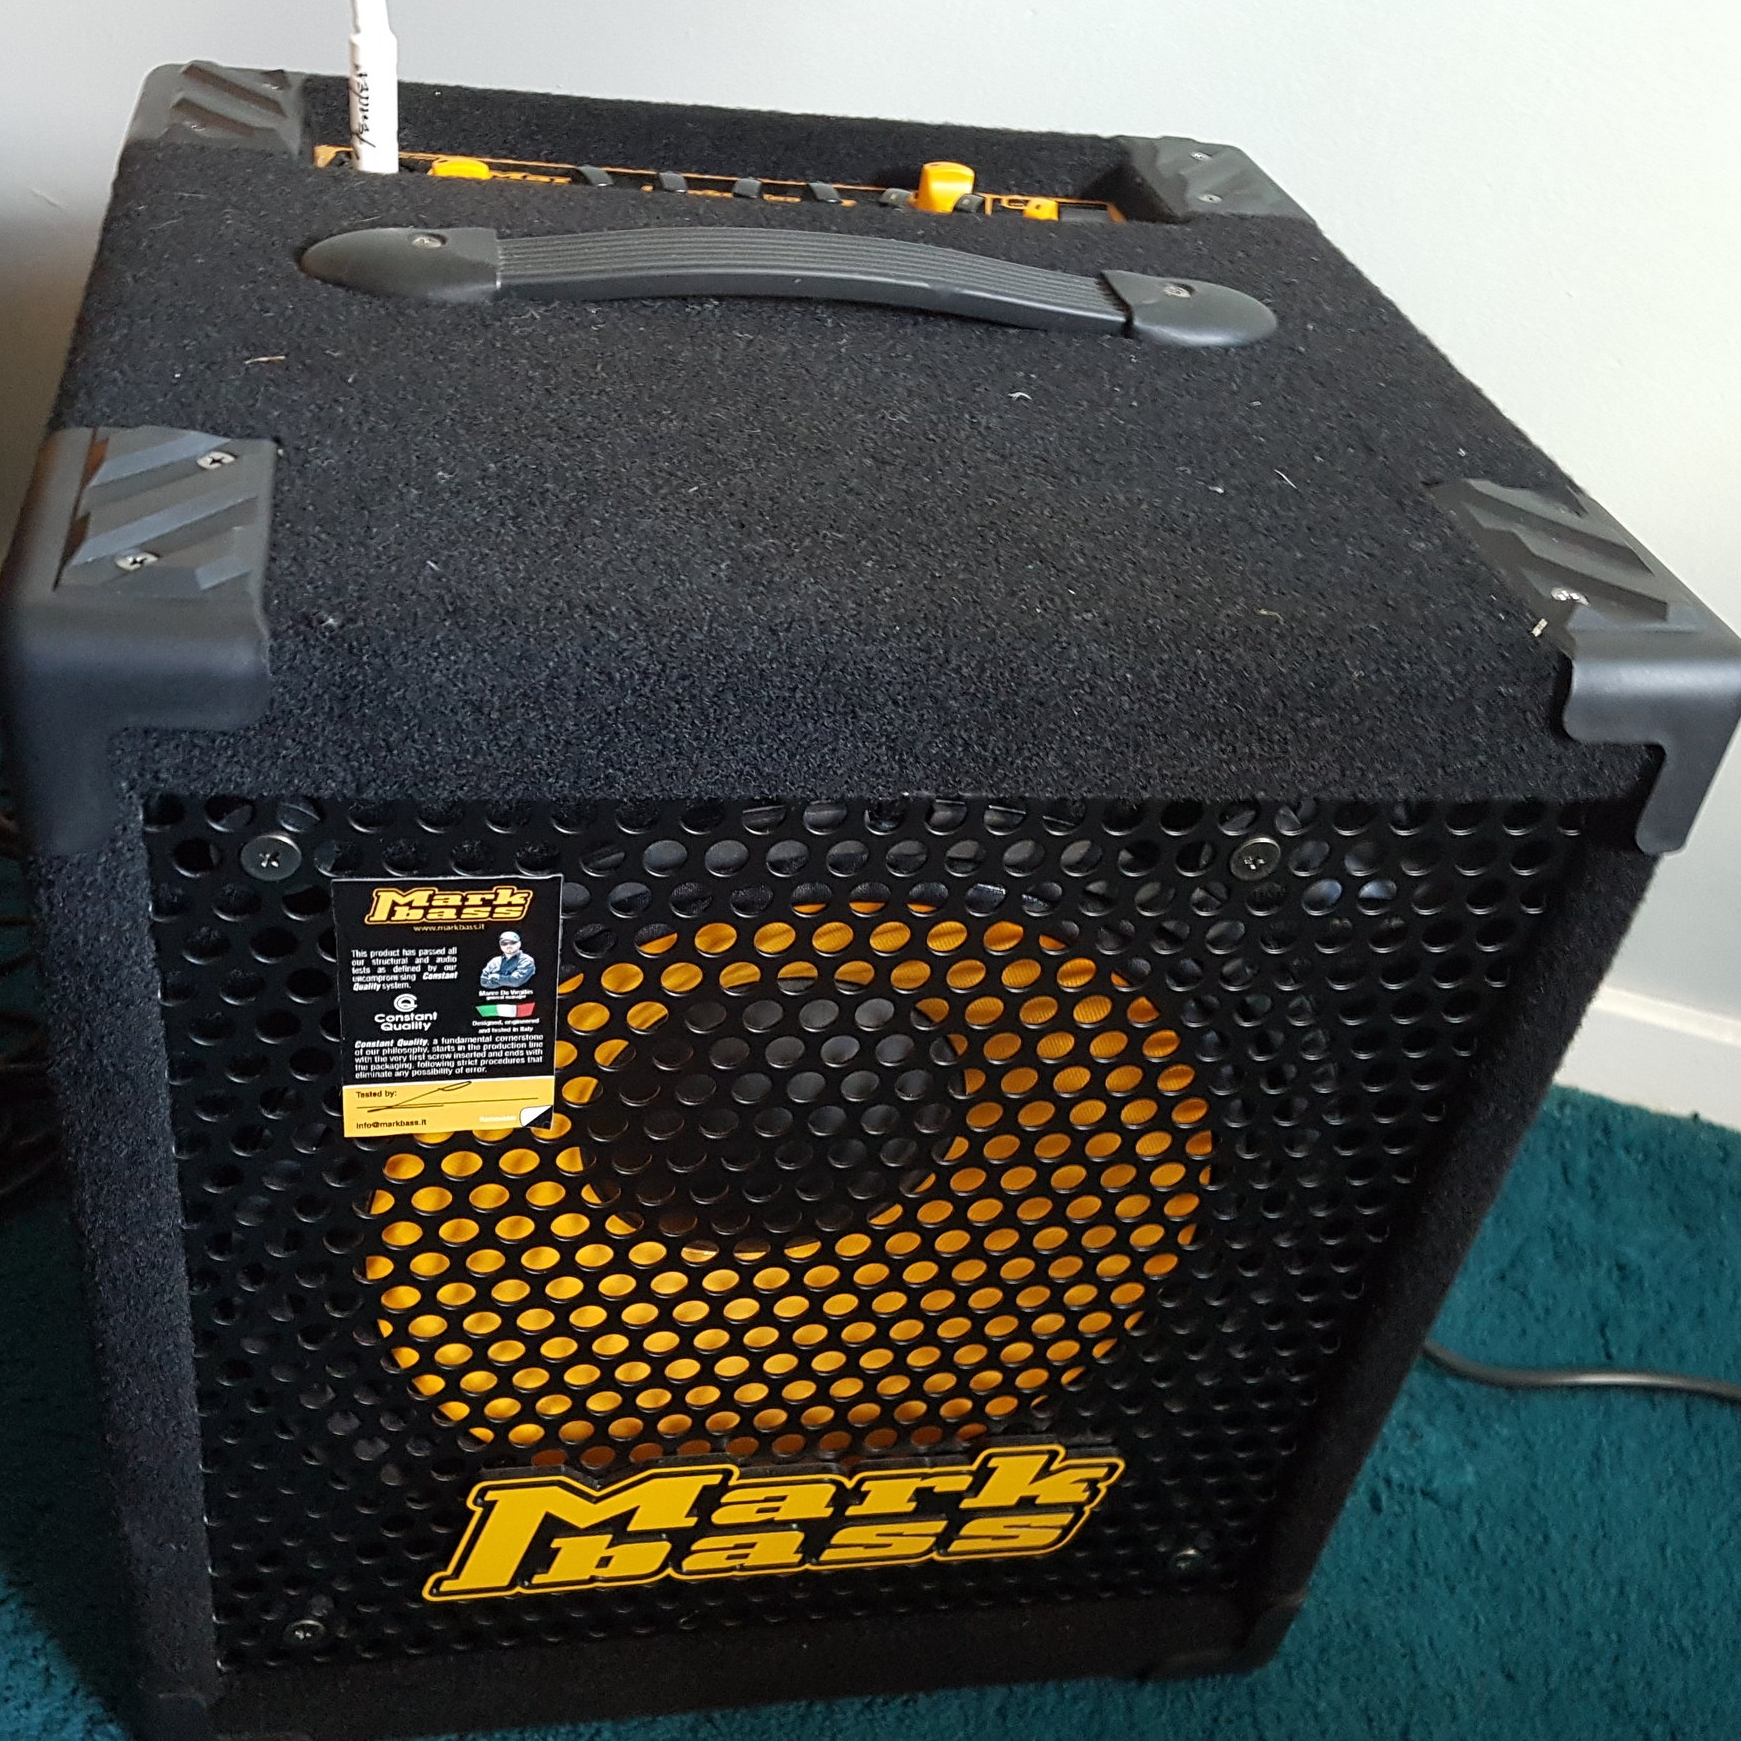 Mark Bass mini CMD 121p amplifier